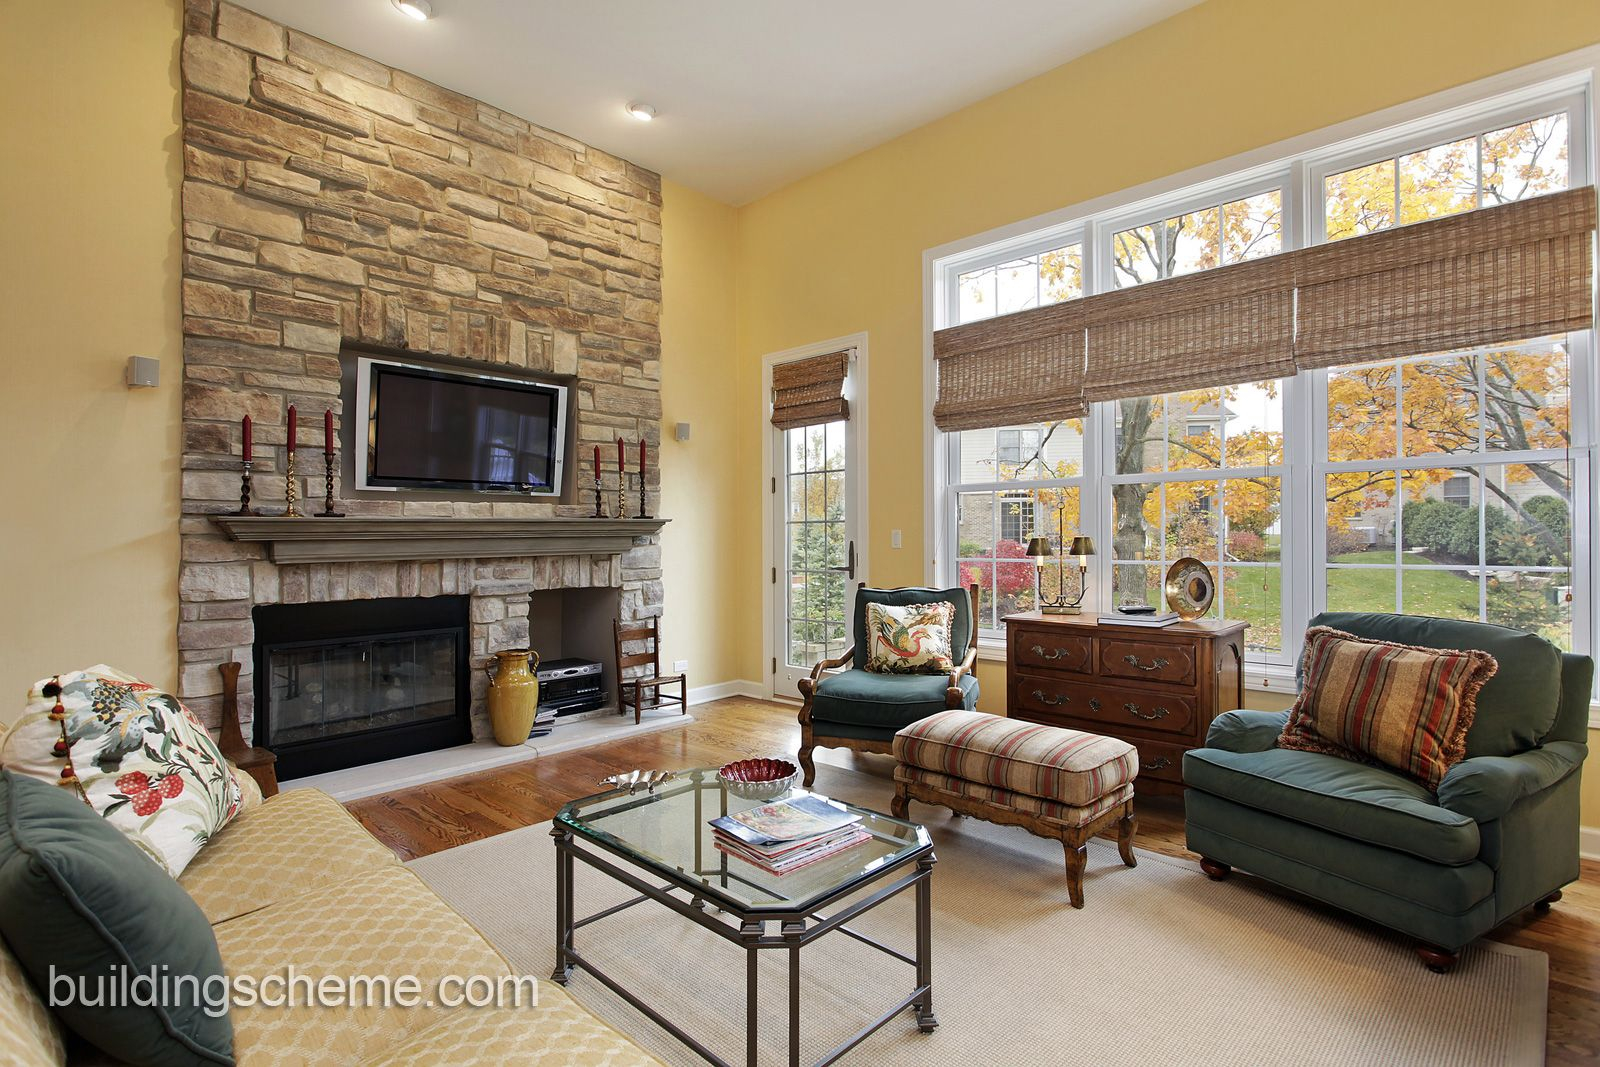 How To Set Up And Arrange A Living Room Arrange Family Room pertaining to 14 Awesome Concepts of How to Craft How To Set Up A Living Room